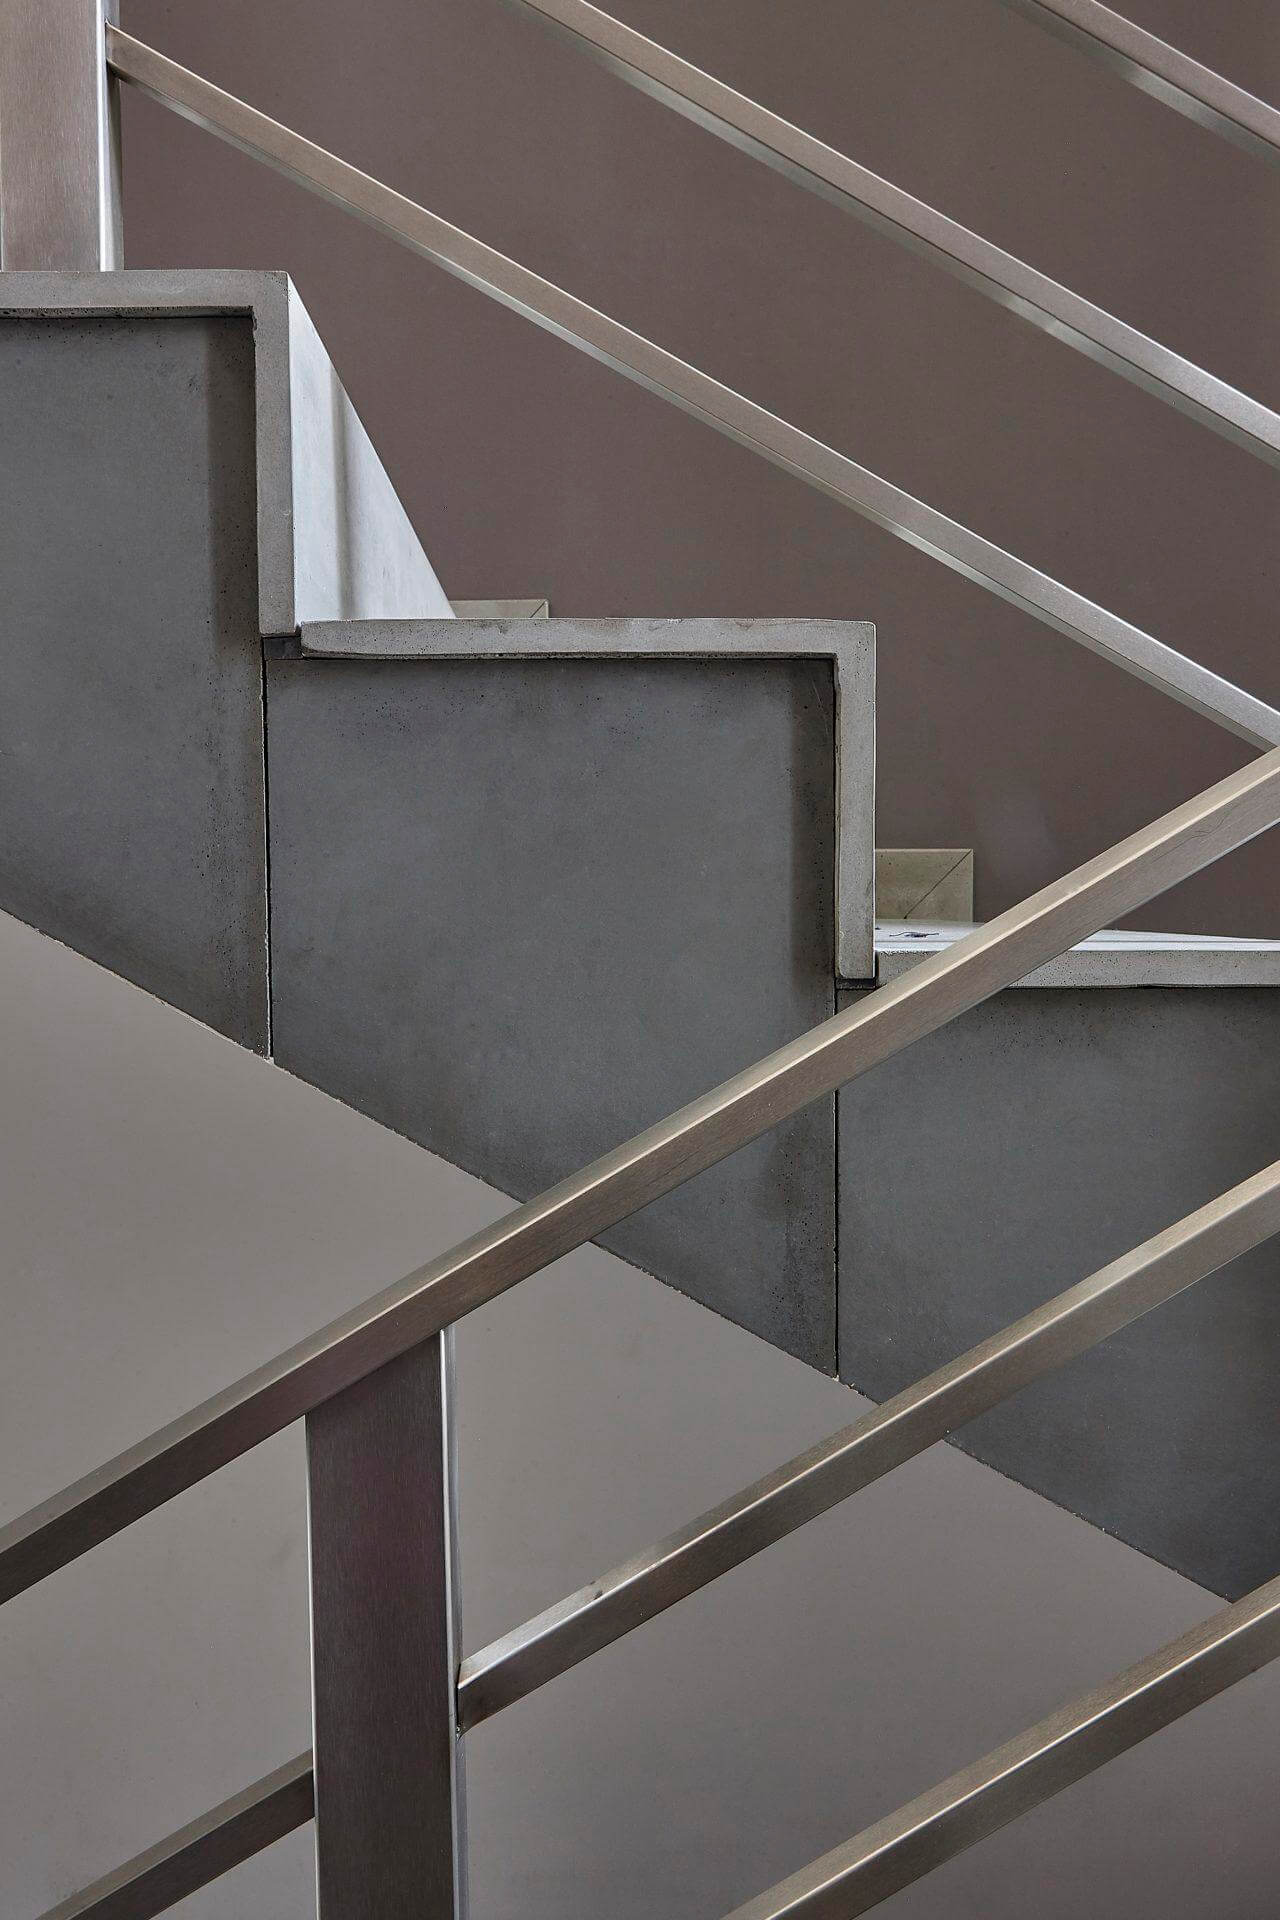 Concrete lining stairs I